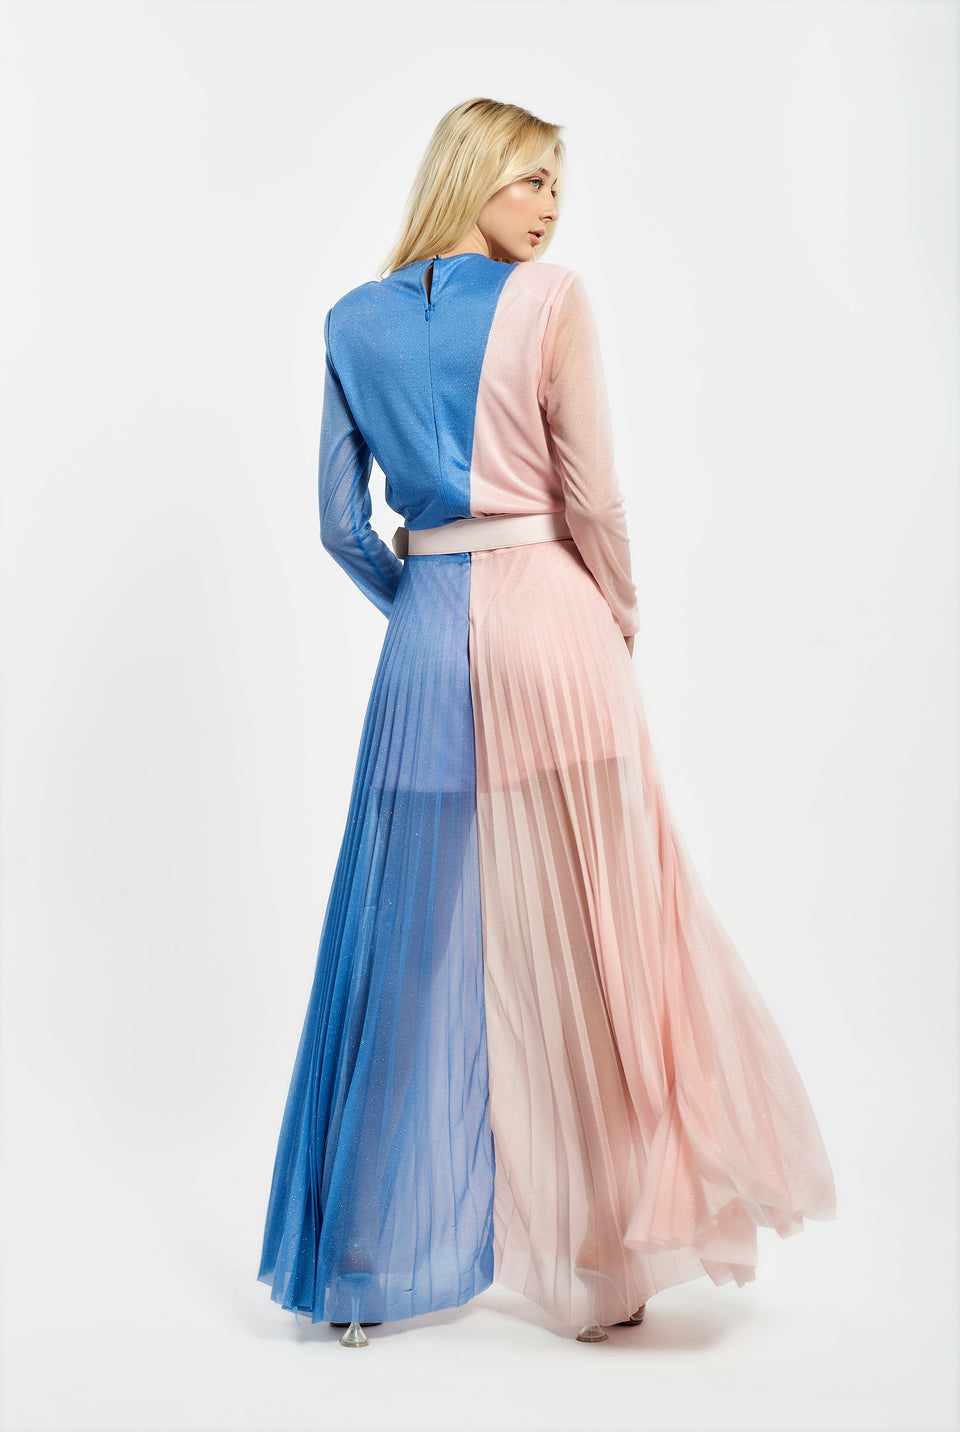 TWO-COLOR MAXI DRESS IN LUREX FABRIC BLUE